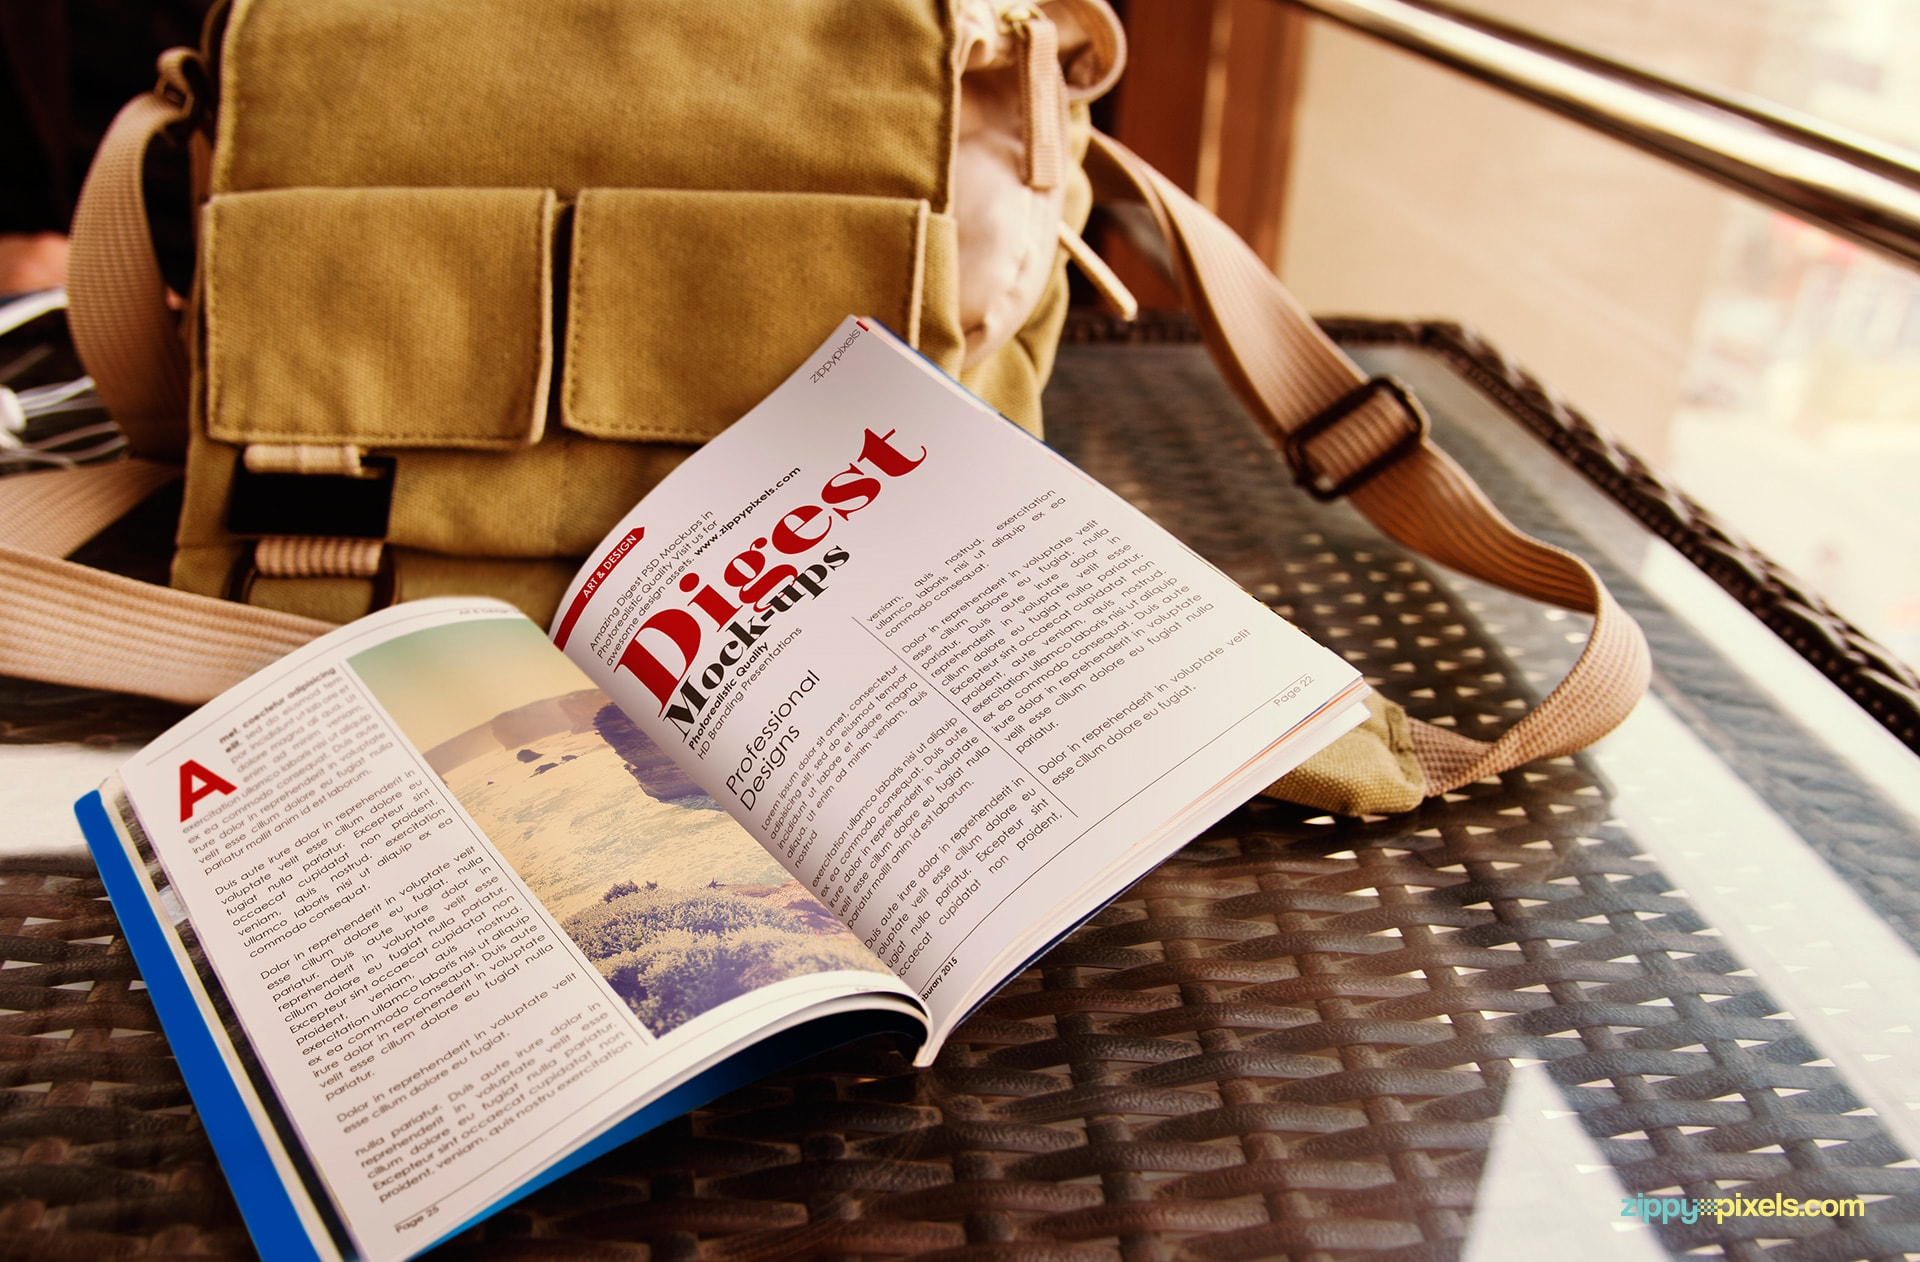 free-digest-open-magaine-mockup-with-traveling-bag